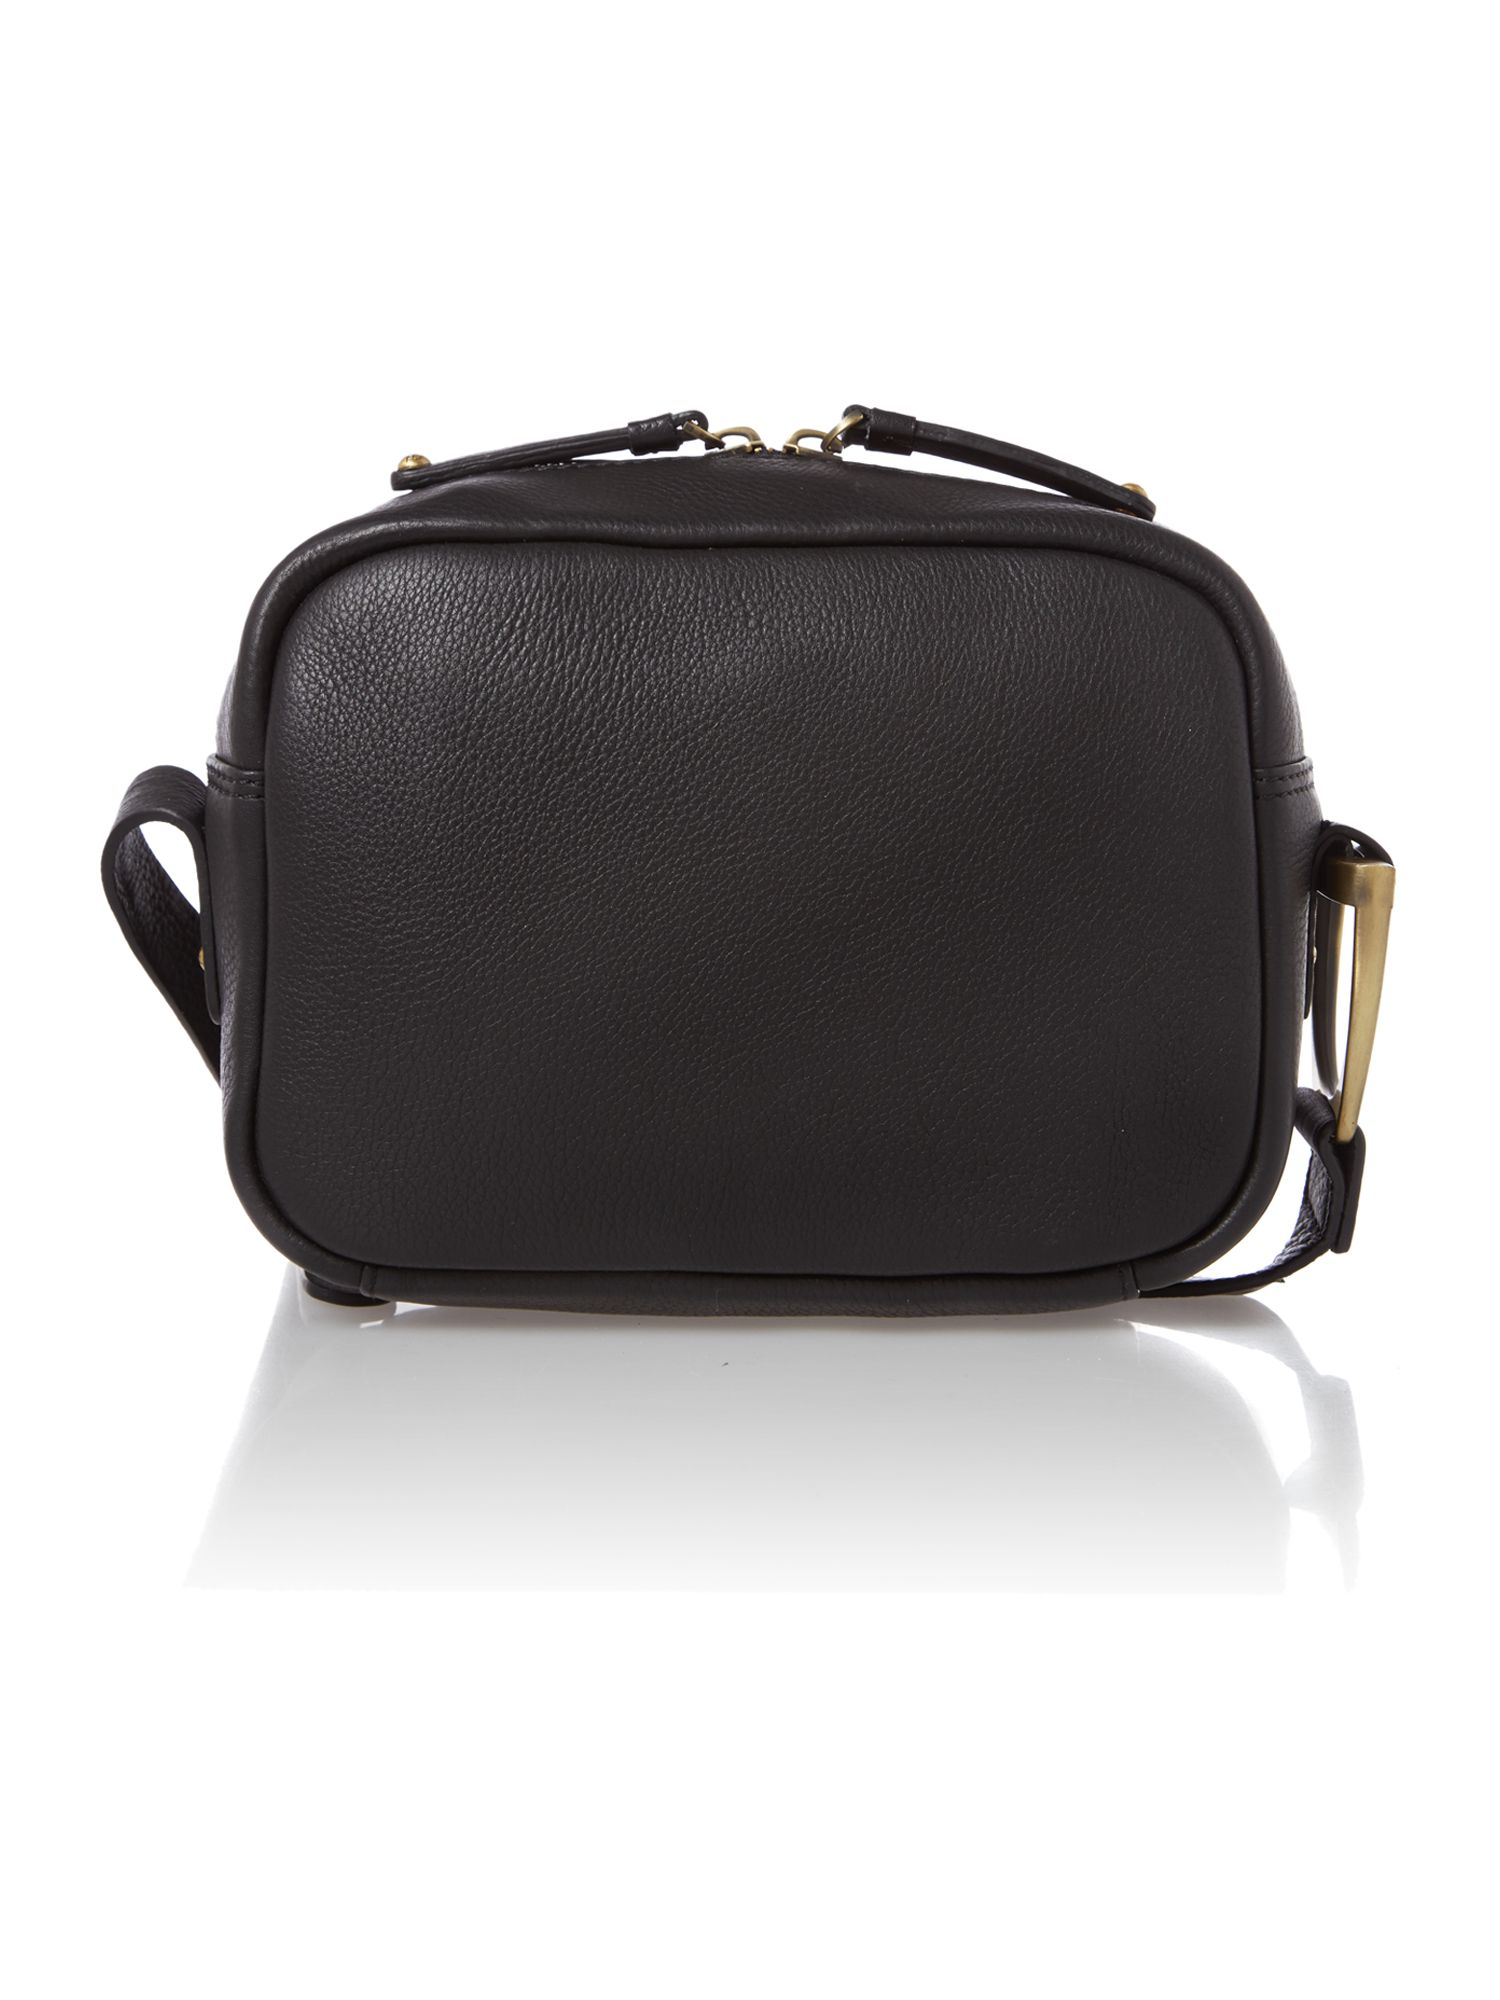 Burton Agnes black cross body bag